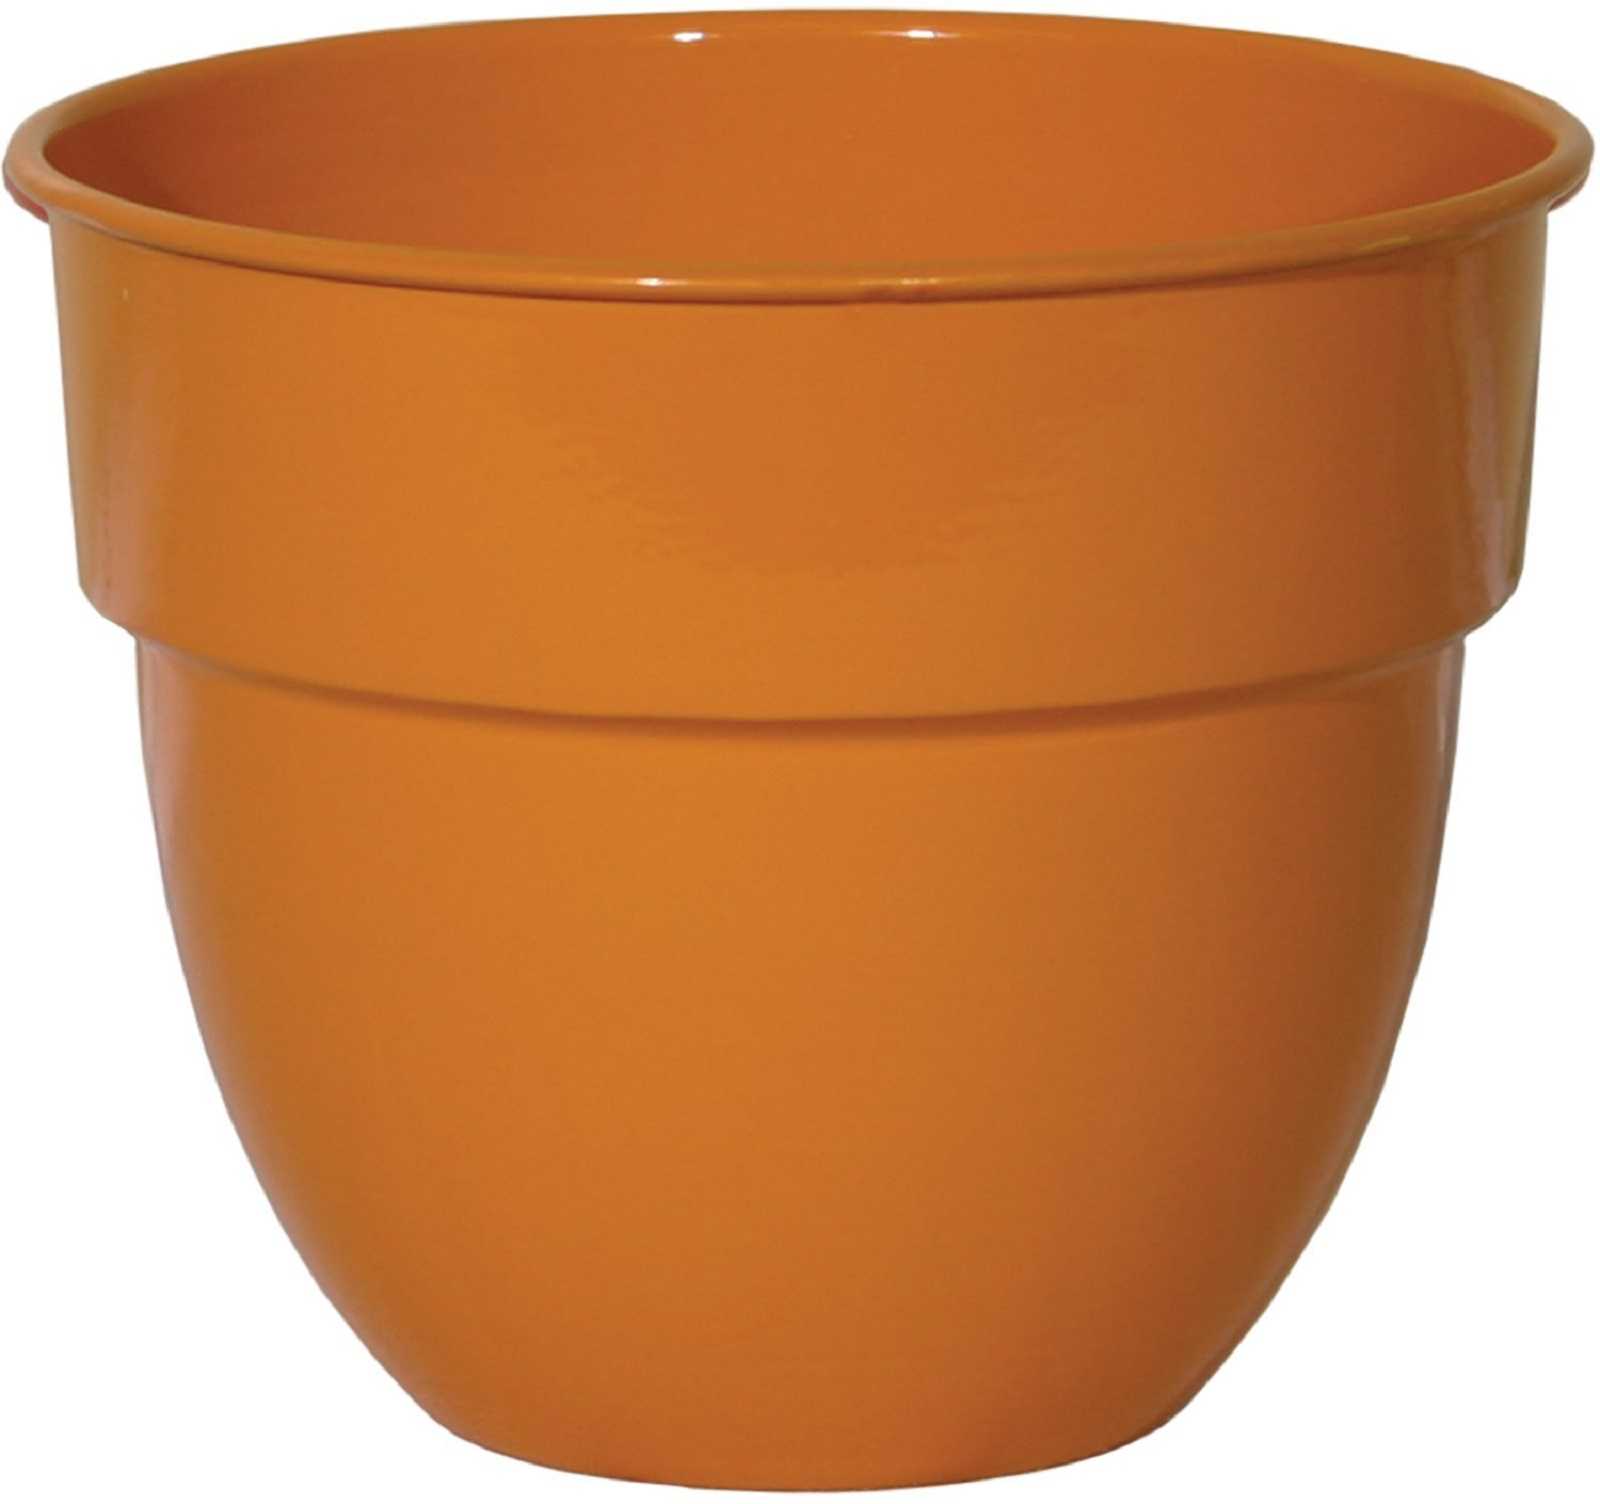 "Robert Allen Home & Garden Mini Bella Classic Bowl Planter 8"""" Orange"